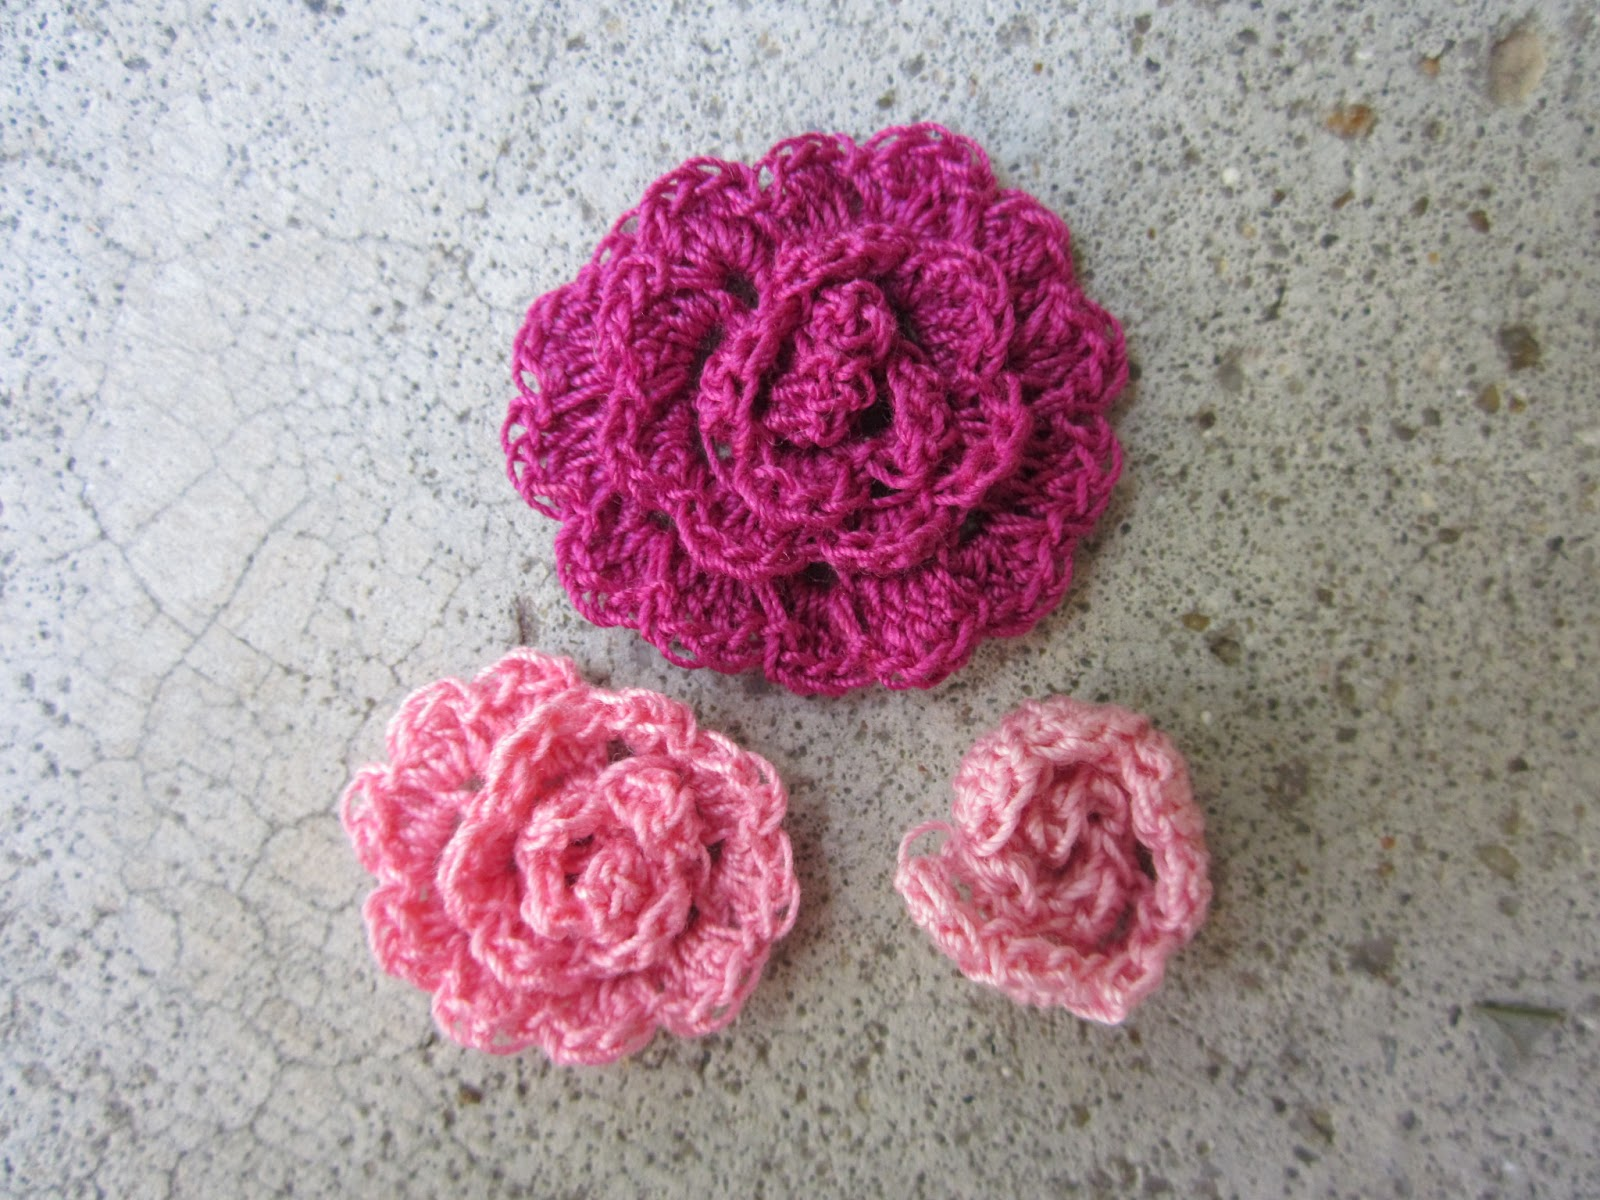 Large Crochet Rose Pattern Free : Primarily Patterns: Cabbage Rose / Peony Crochet Pattern